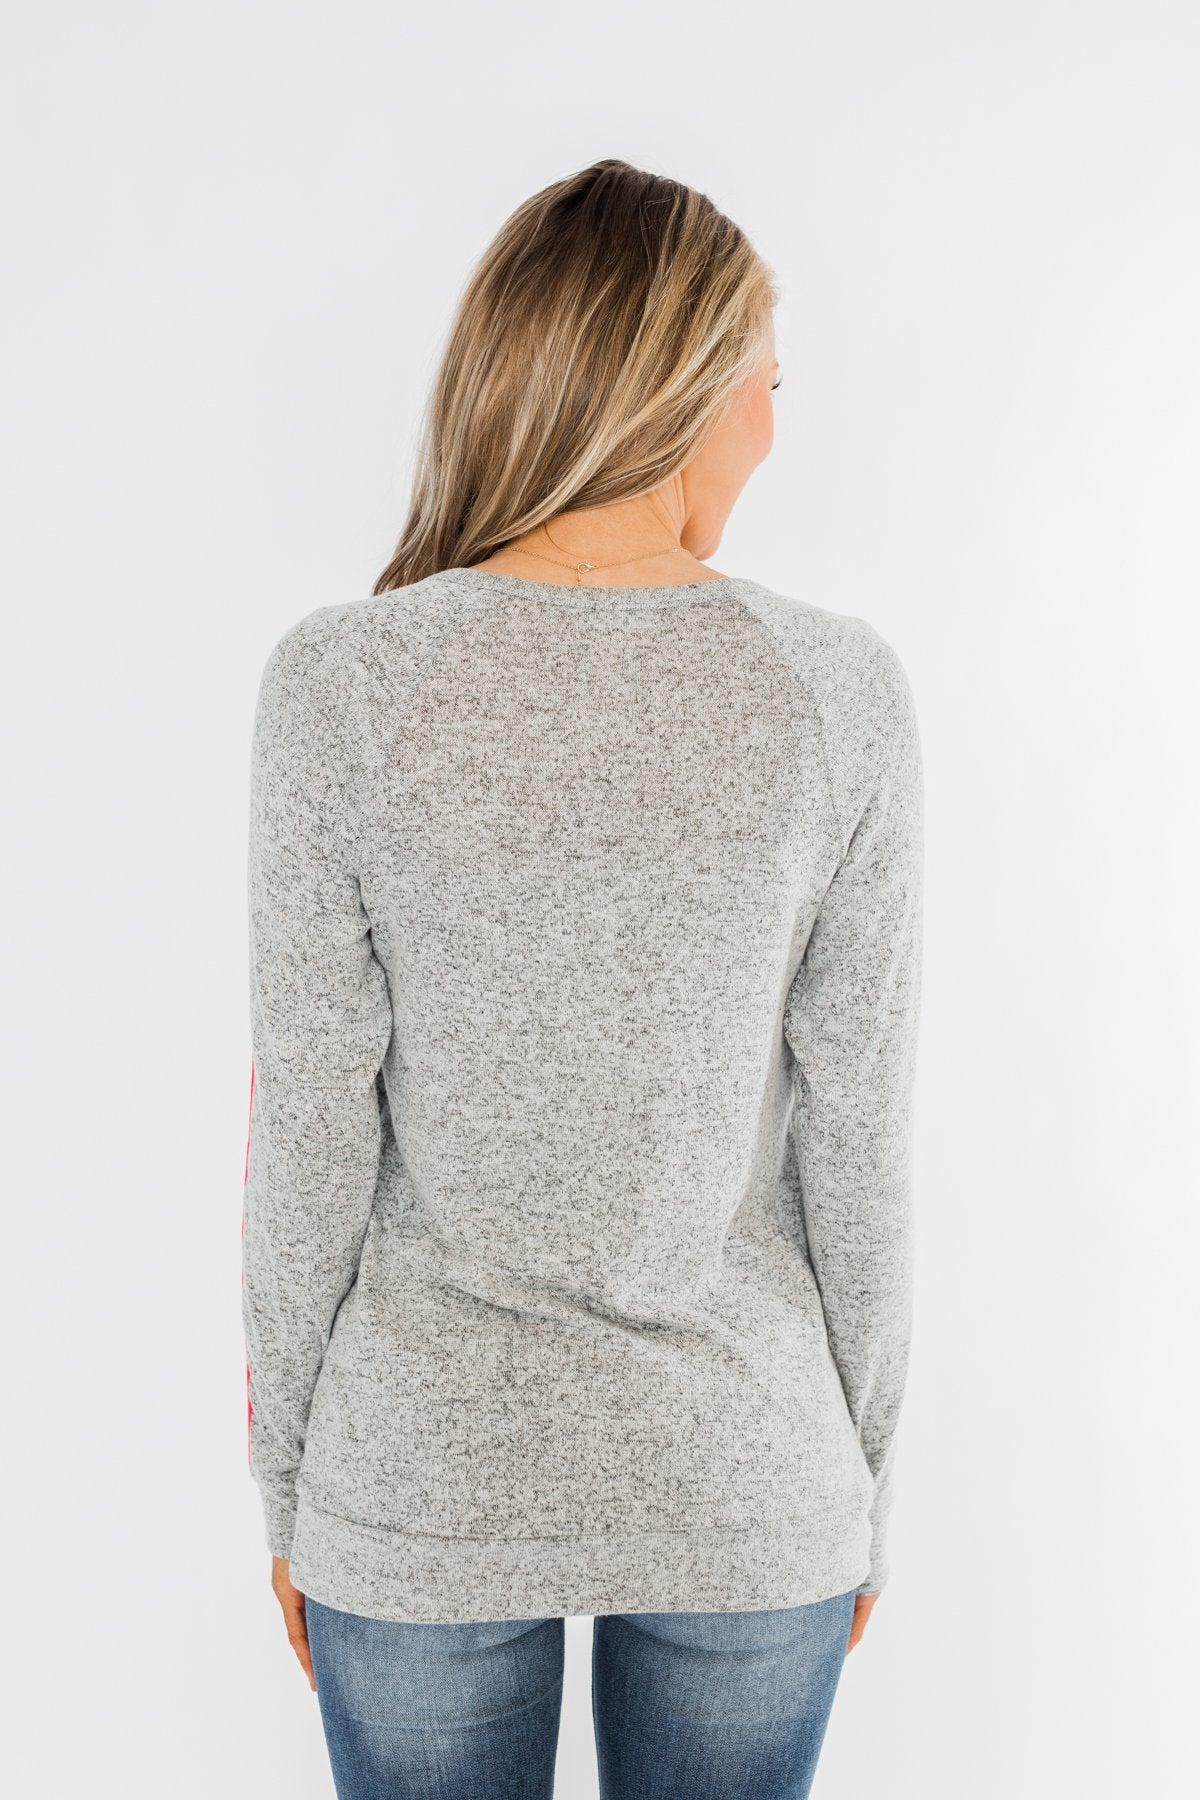 Pep In My Step Stripe Pullover Top- Heather Grey